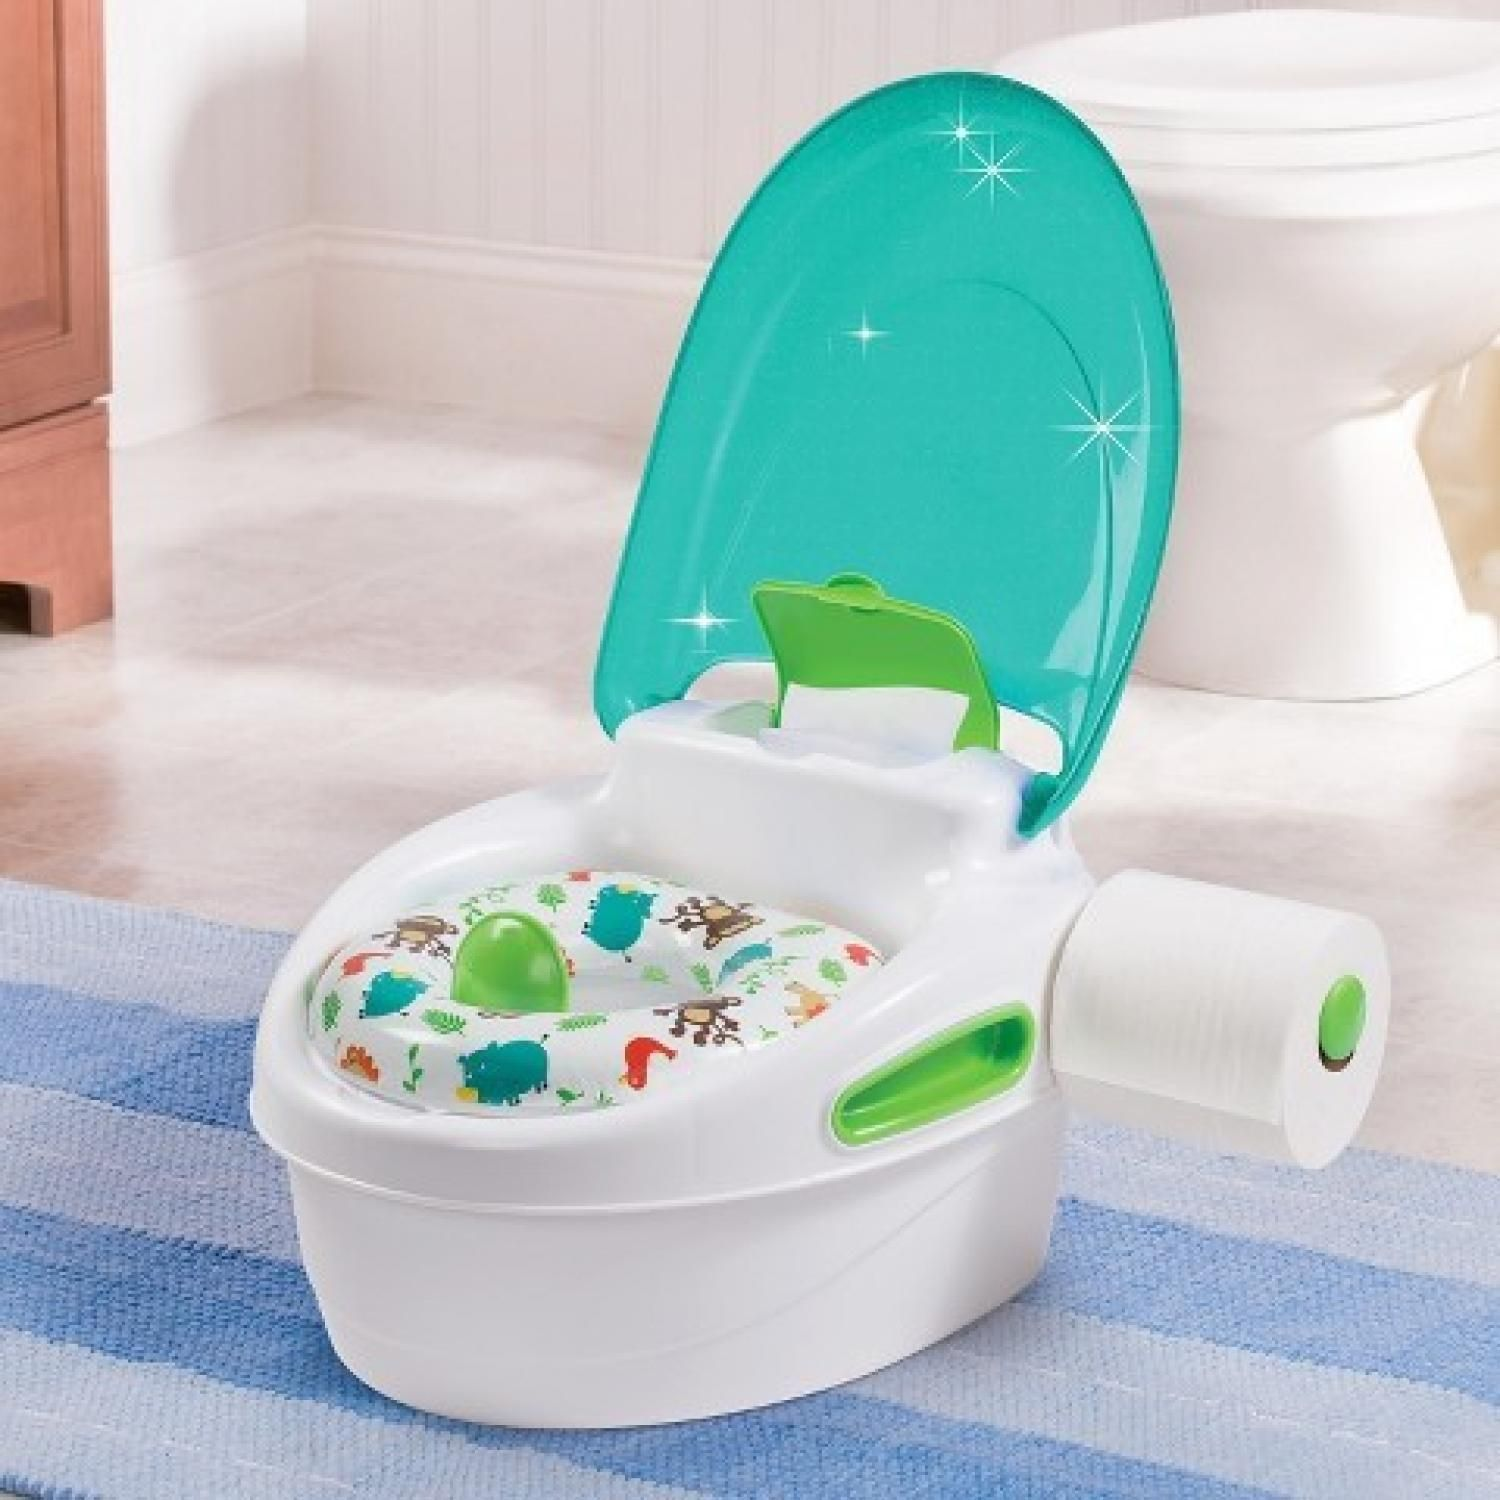 Fabulous Best Potty Training Products Kids Potty Potty Training Caraccident5 Cool Chair Designs And Ideas Caraccident5Info